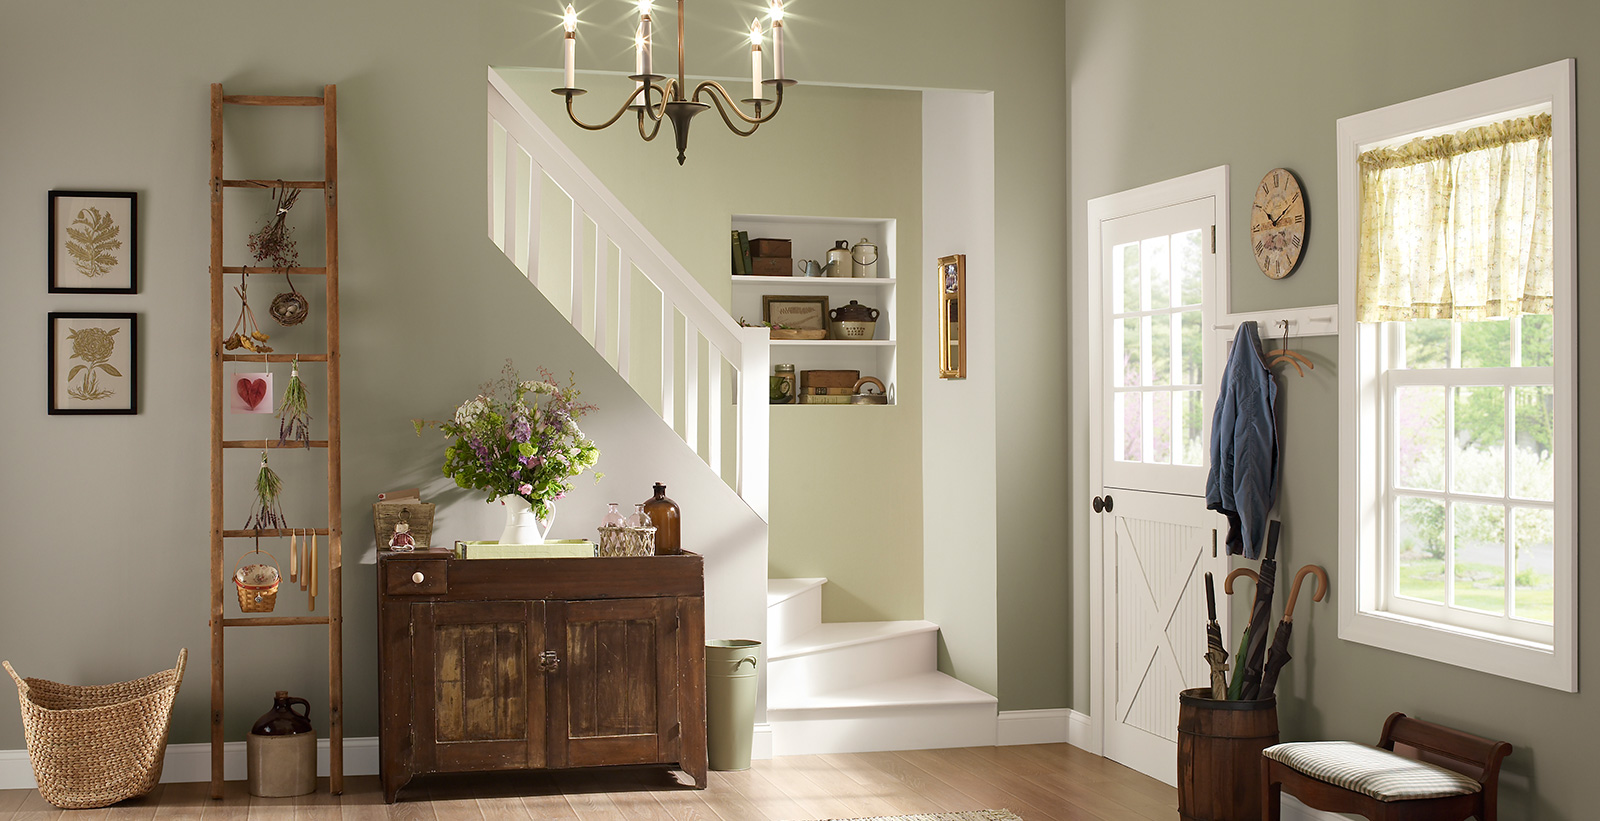 Hallway with stairs, neutral color wall, and white trim, cottage casual style.